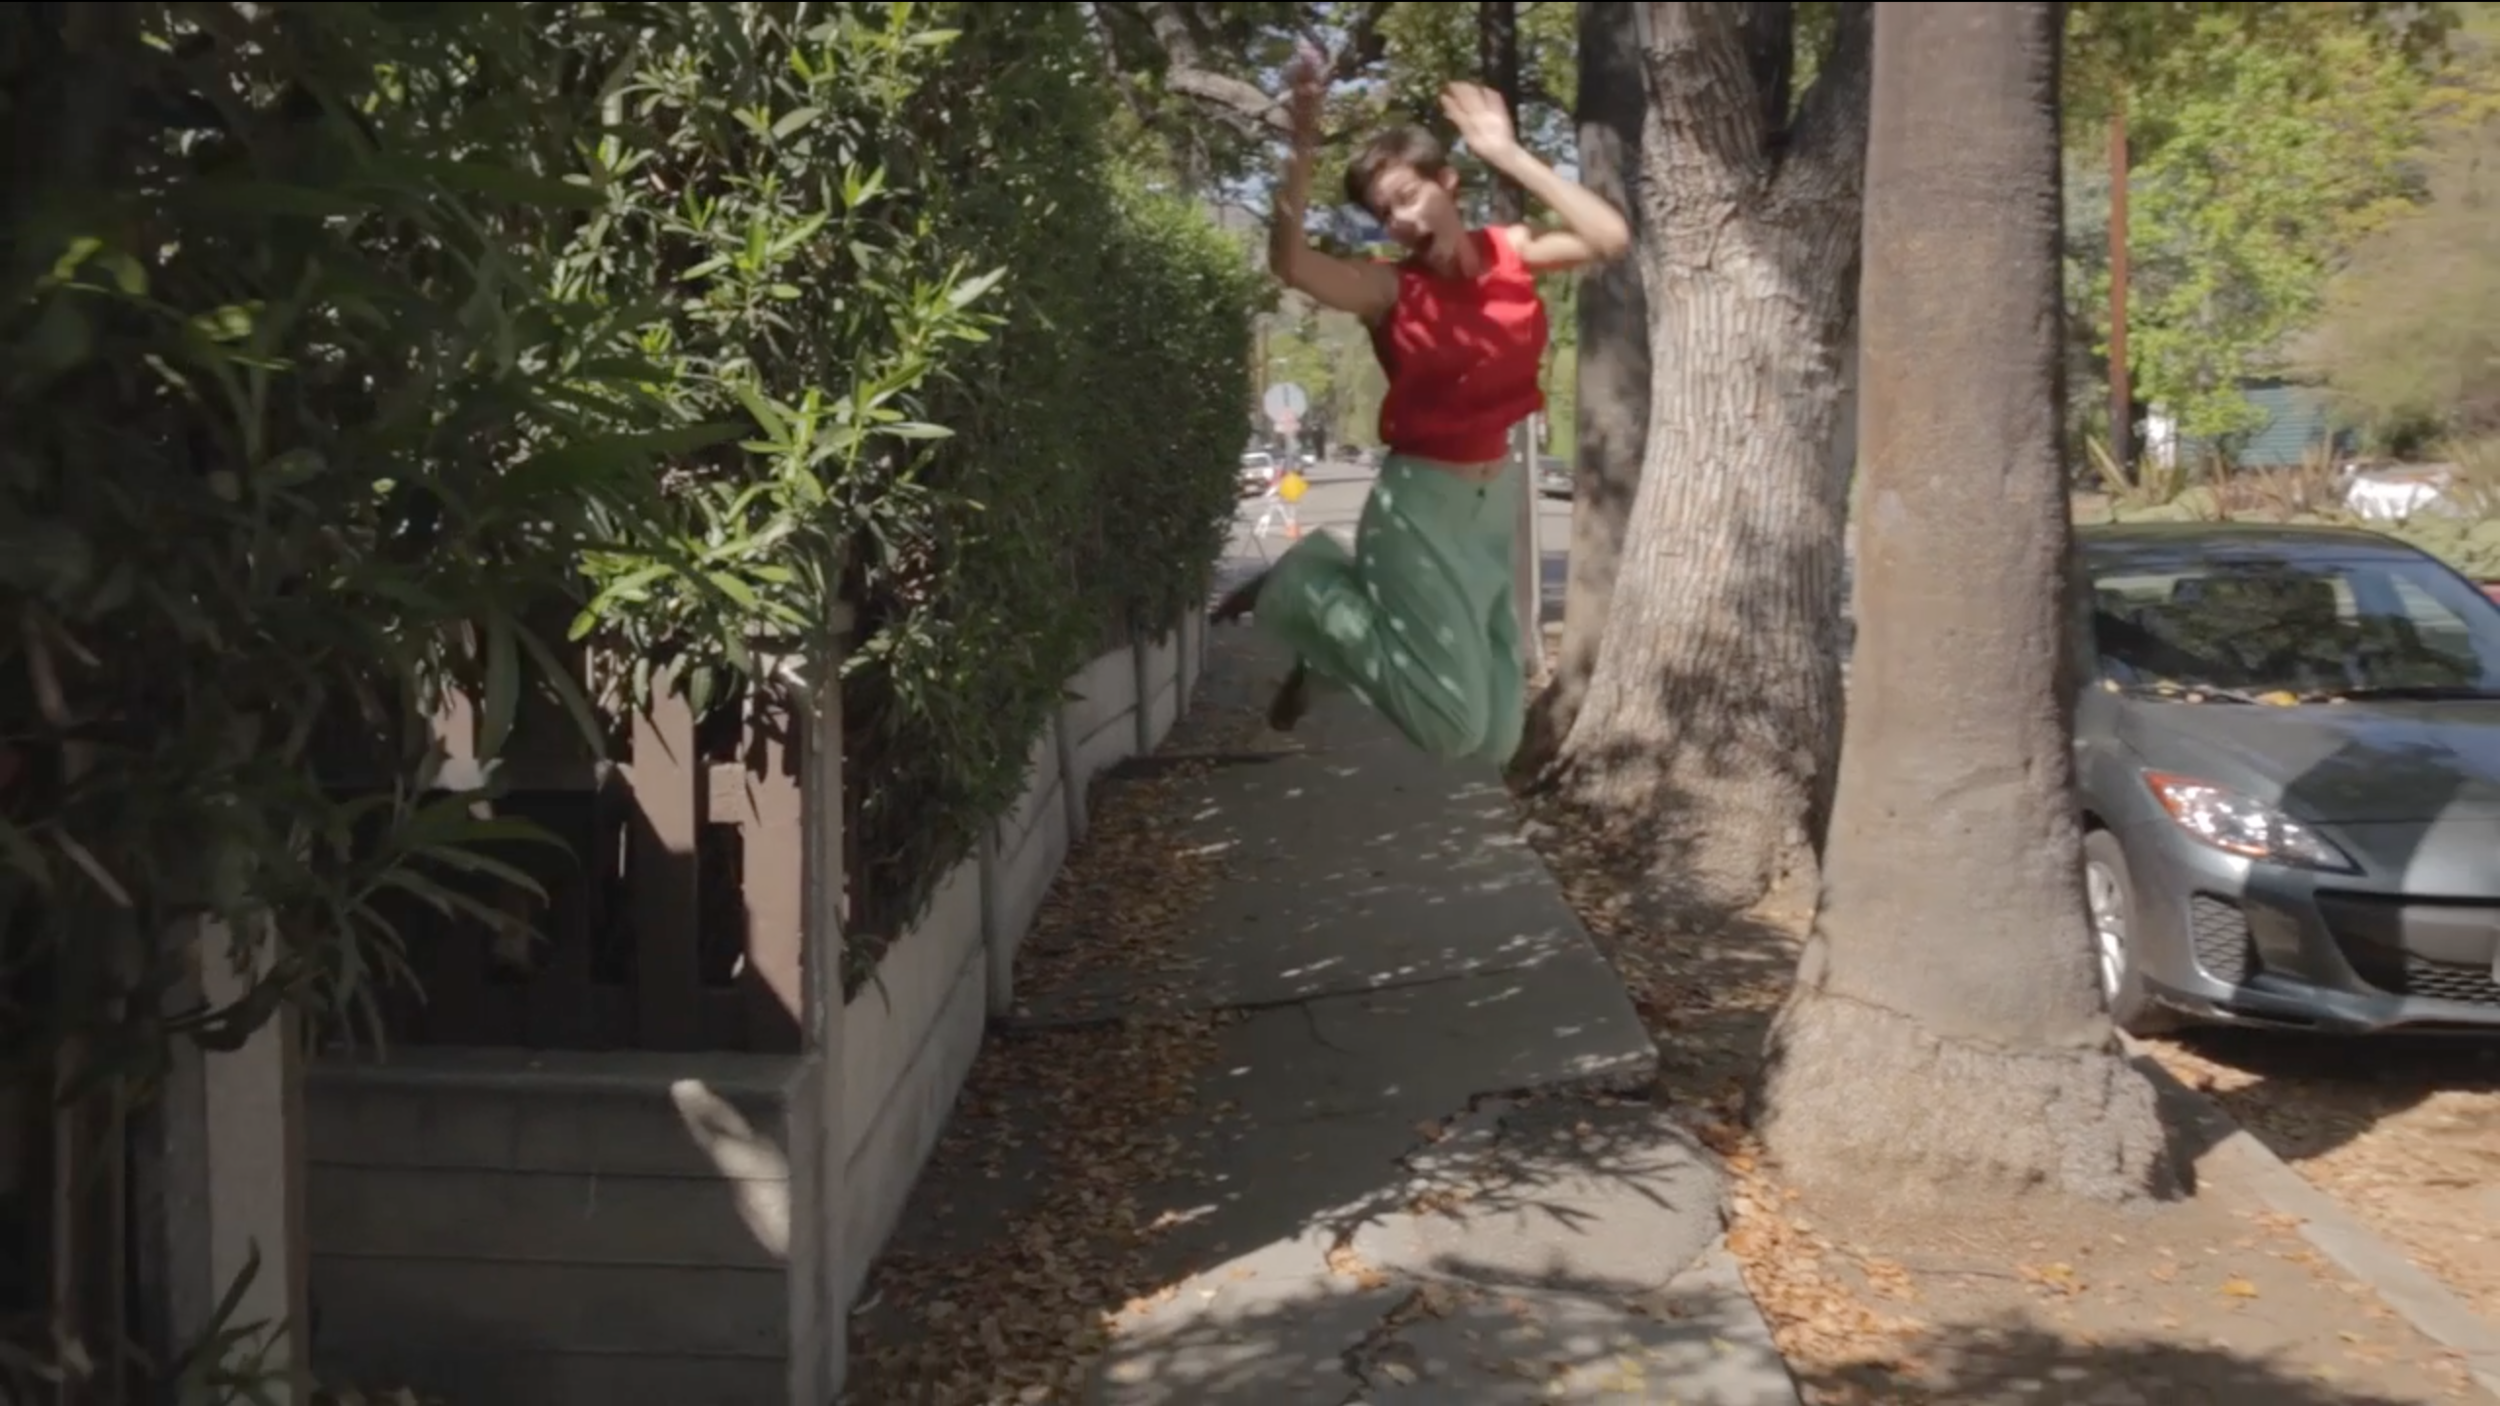 Fix LA's Sidewalks - (WRITER - DIRECTOR - EDITOR - ACTOR)Angelenos Trip Over Our Broken Sidewalks In Hilarious Spoof Of Pharrell's 'Happy' -- LAISTLove this video parody -- LA MAYOR ERIC GARCETTI